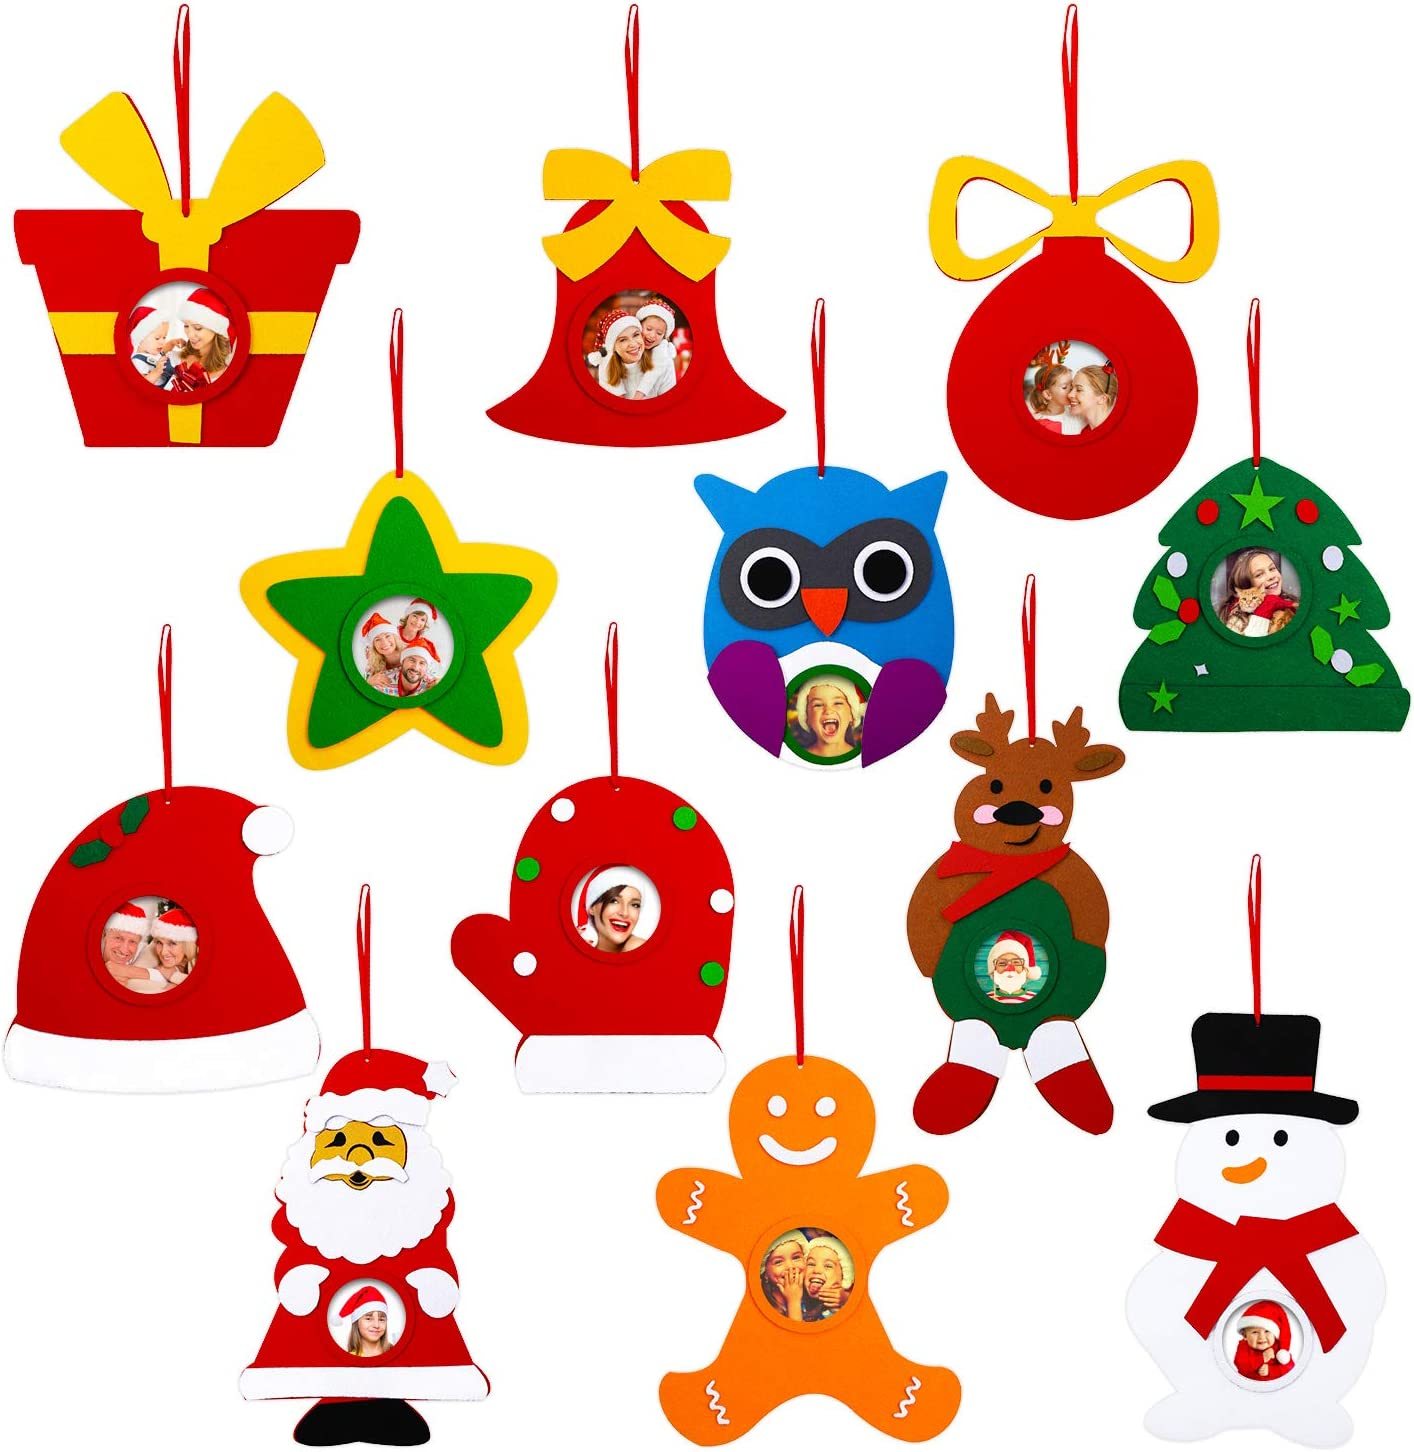 Jetec 12 Sets Christmas Picture Frame Craft Kits Felt Photo Ornament Frames for Hanging on Christmas Trees Crafts, Kids and Home Activities